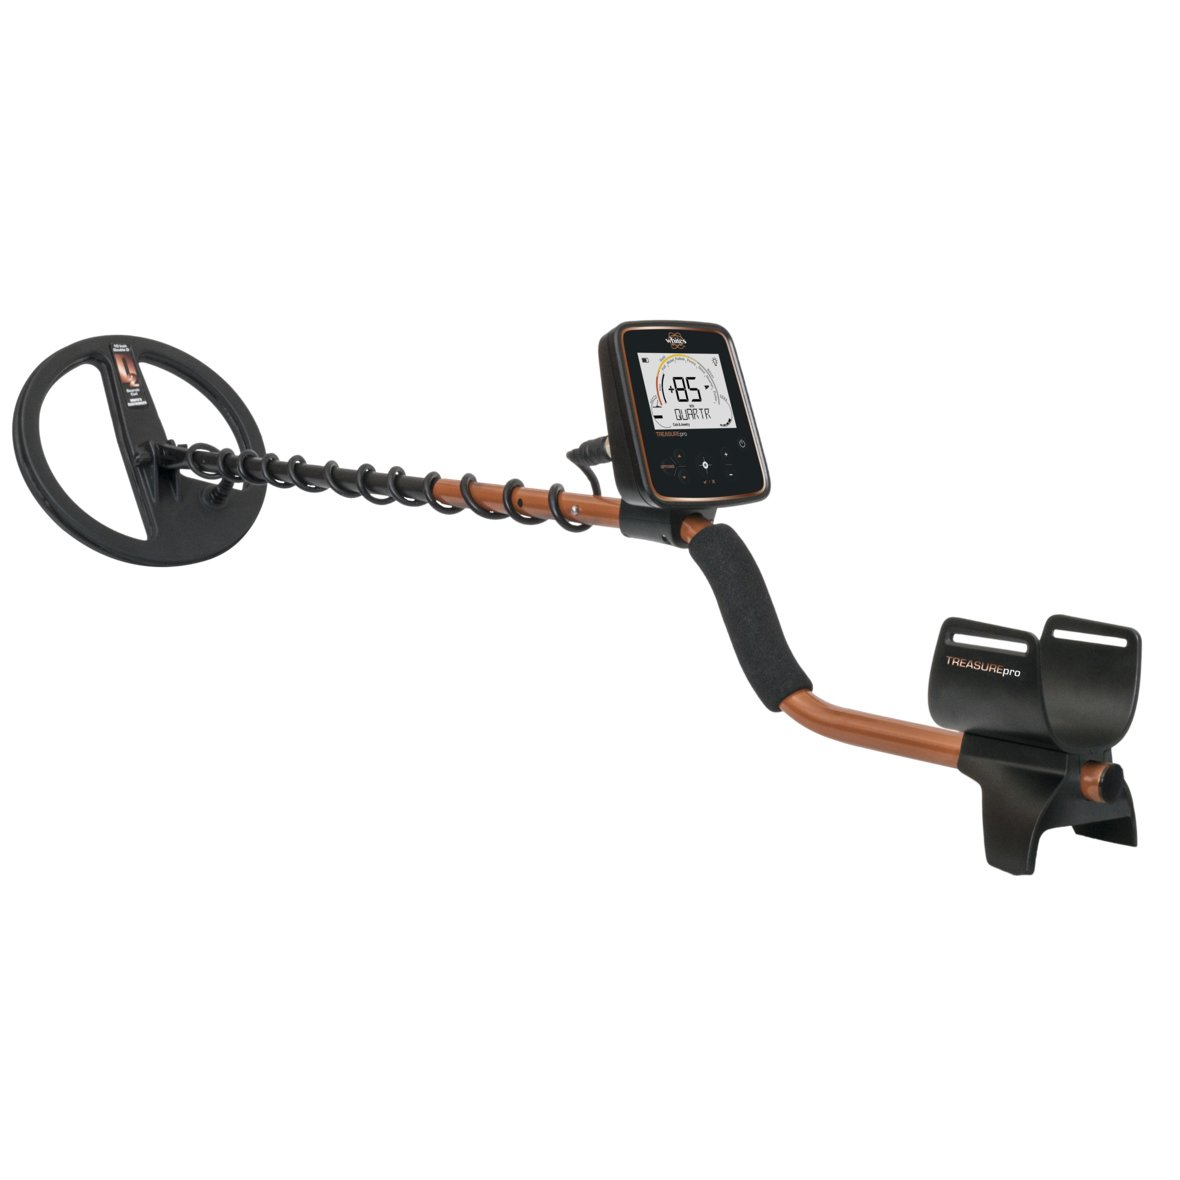 Amazon.com : Whites TreasurePRO Metal Detector 10